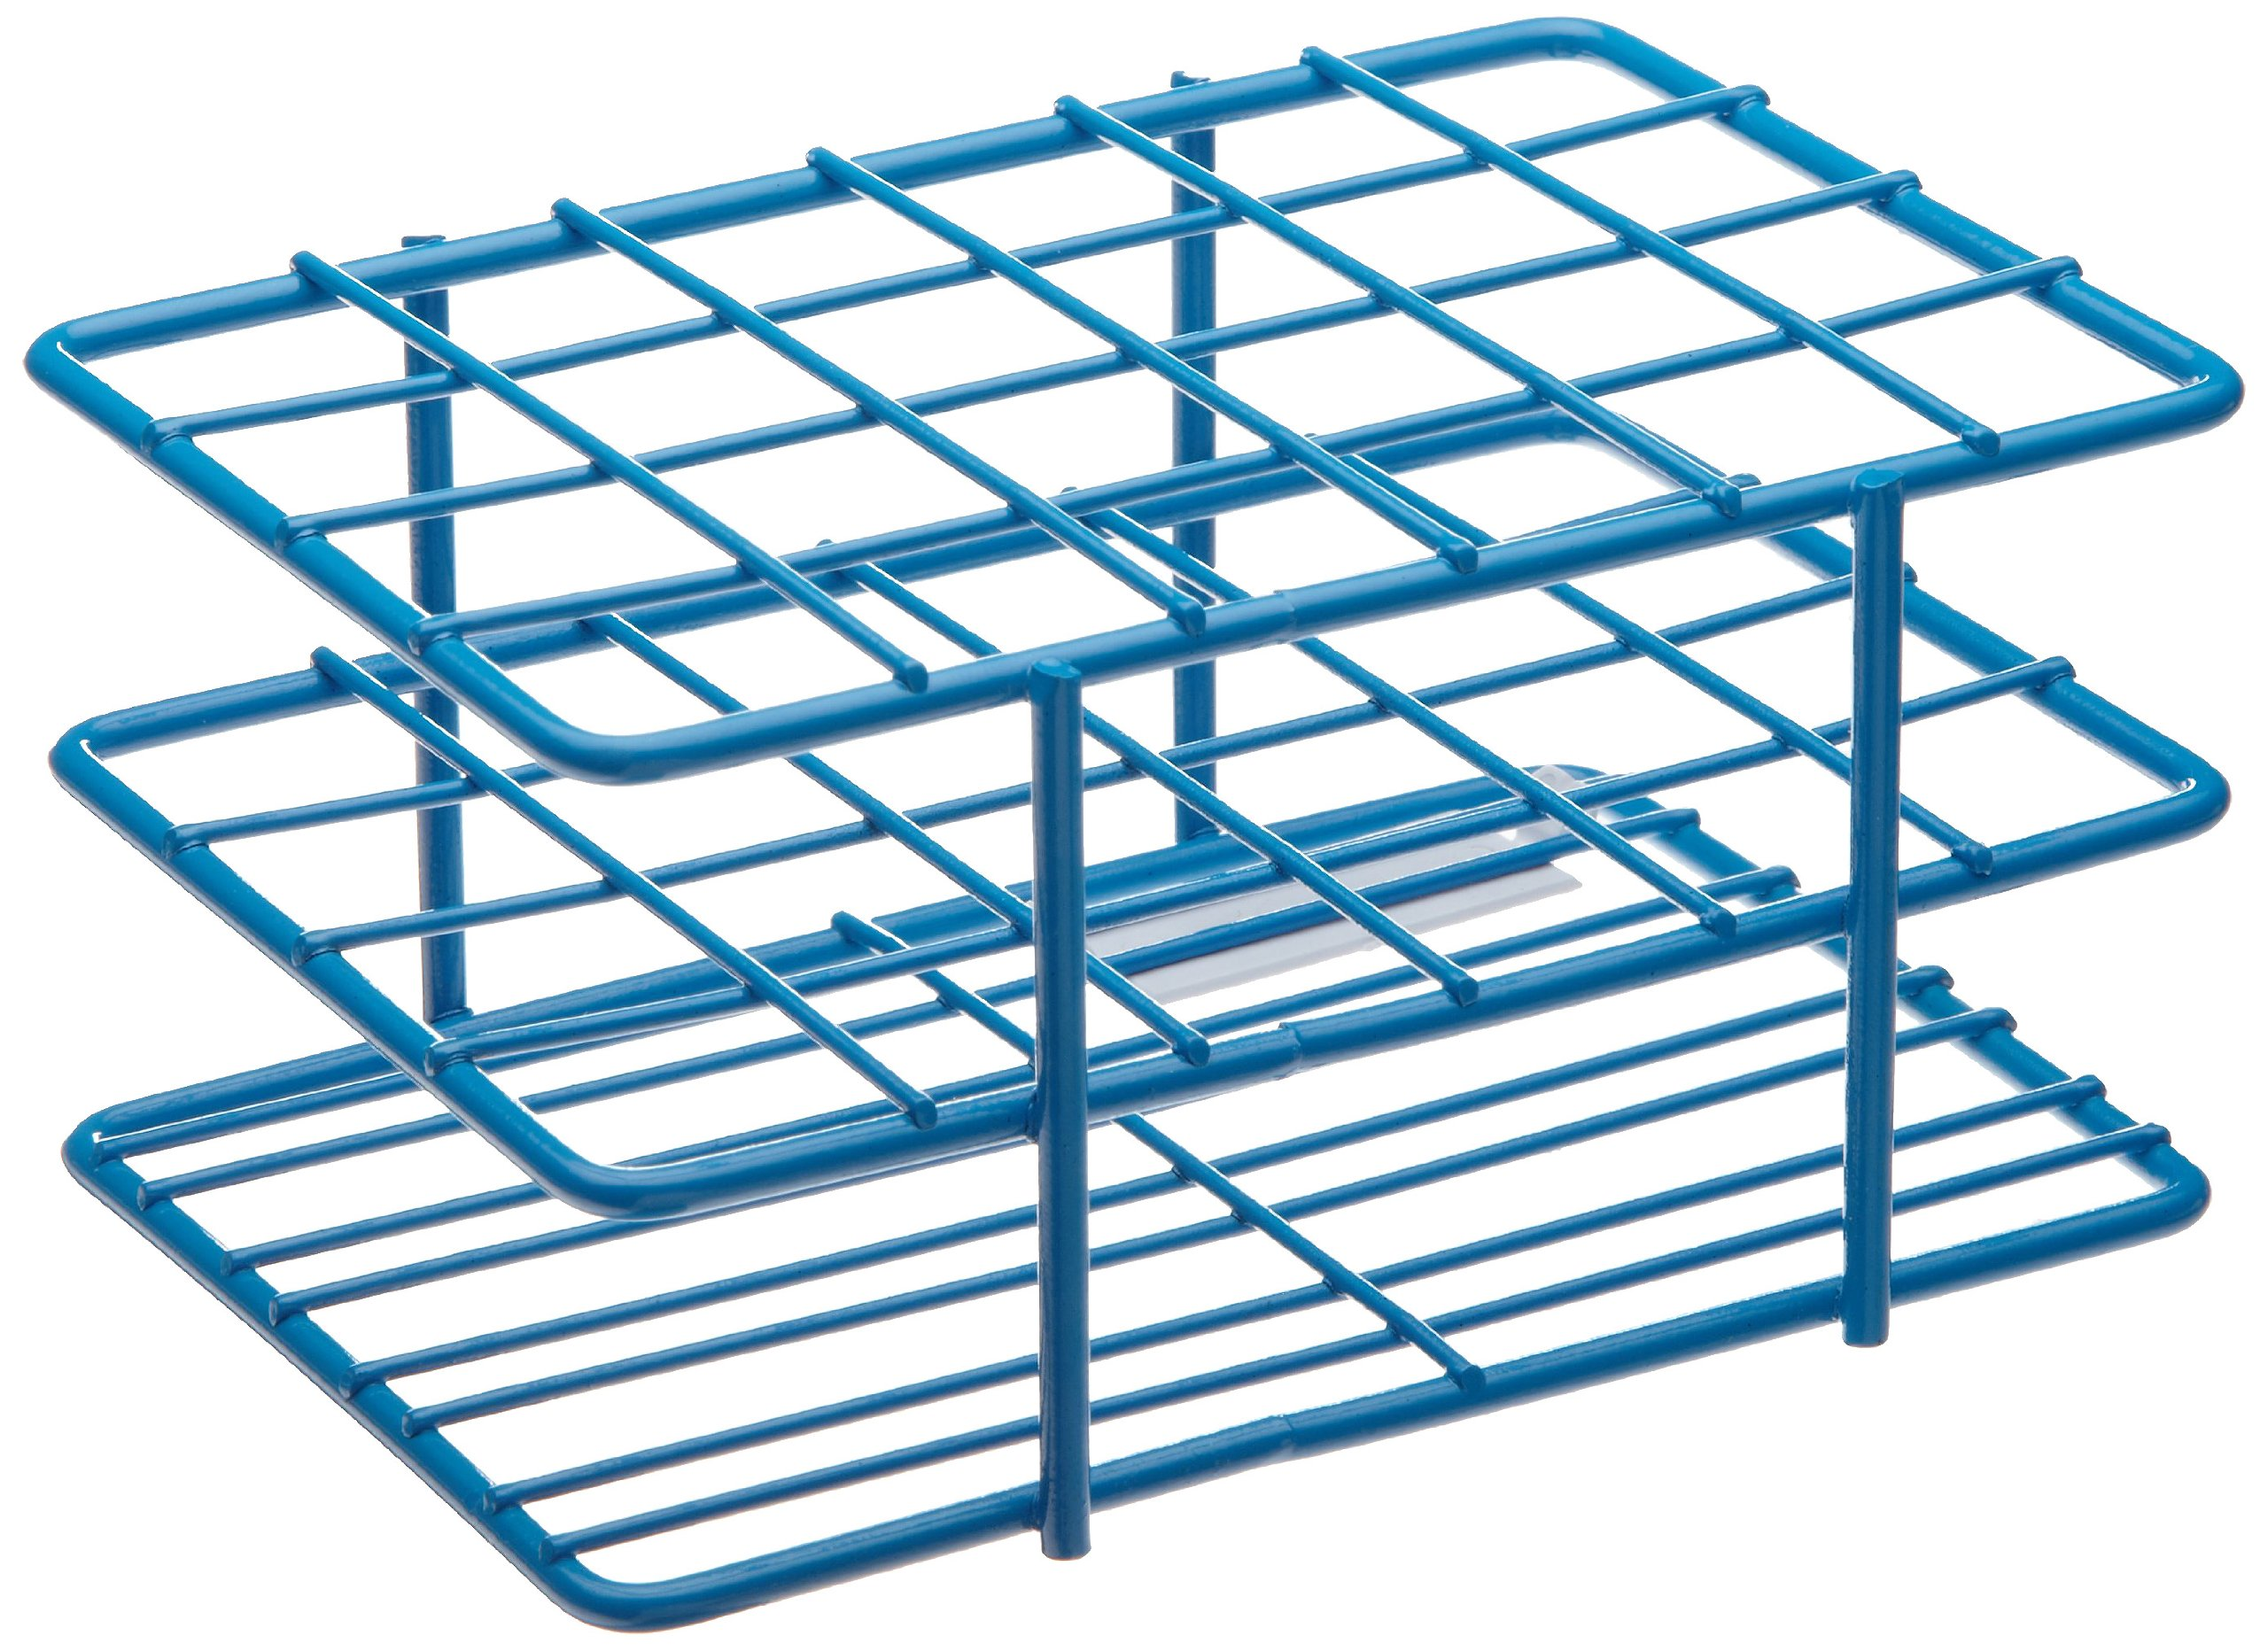 Bel-Art F18788-1601 Poxygrid ''Half-Size'' Test Tube Rack; 15-16mm, 24 Places, 4¹⁵/₁₆ x 3⁵/₈ x 2¹/₂ in., Blue by SP Scienceware